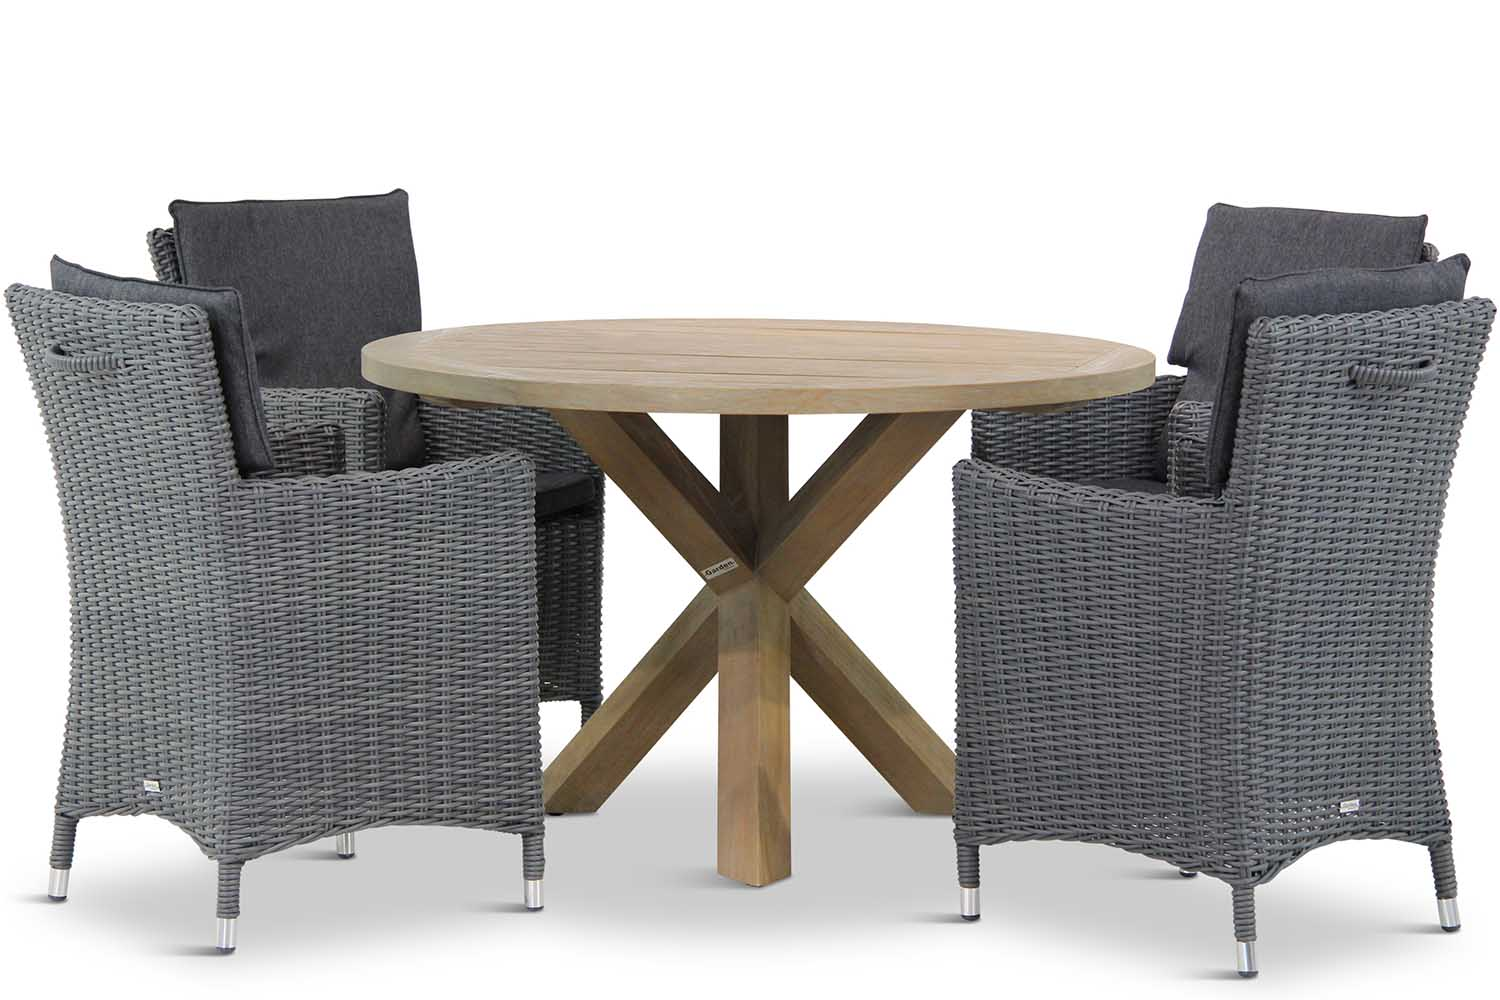 Wicker Garden Collections Springfield/Sand City rond 120 cm dining tuinset 5-delig